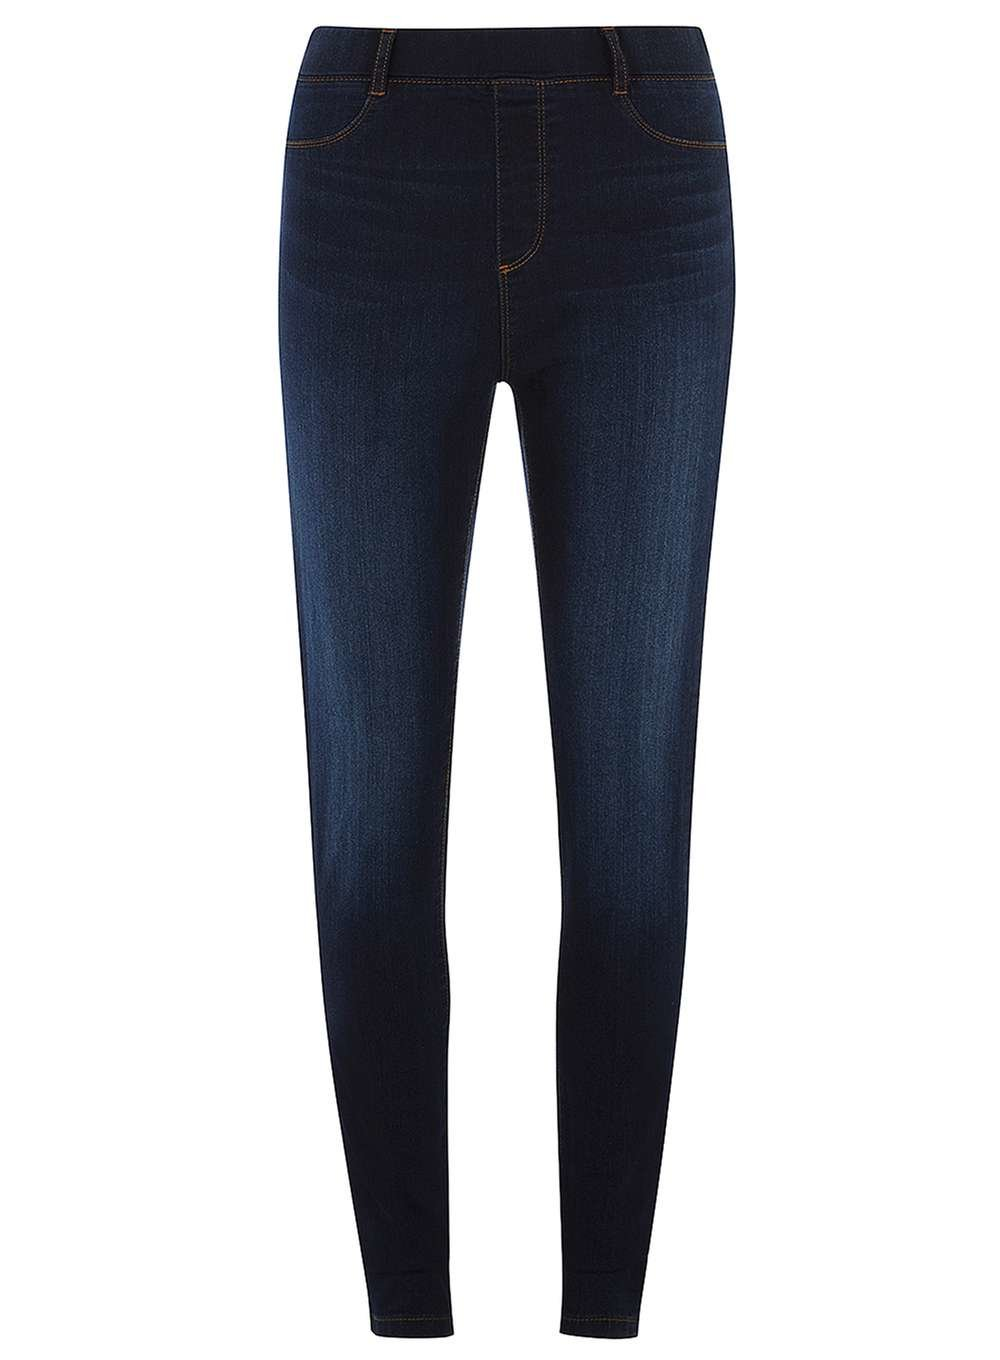 43629a27237ab Lyst - Dorothy Perkins Indigo High Waisted 'eden' Jeggings in Blue